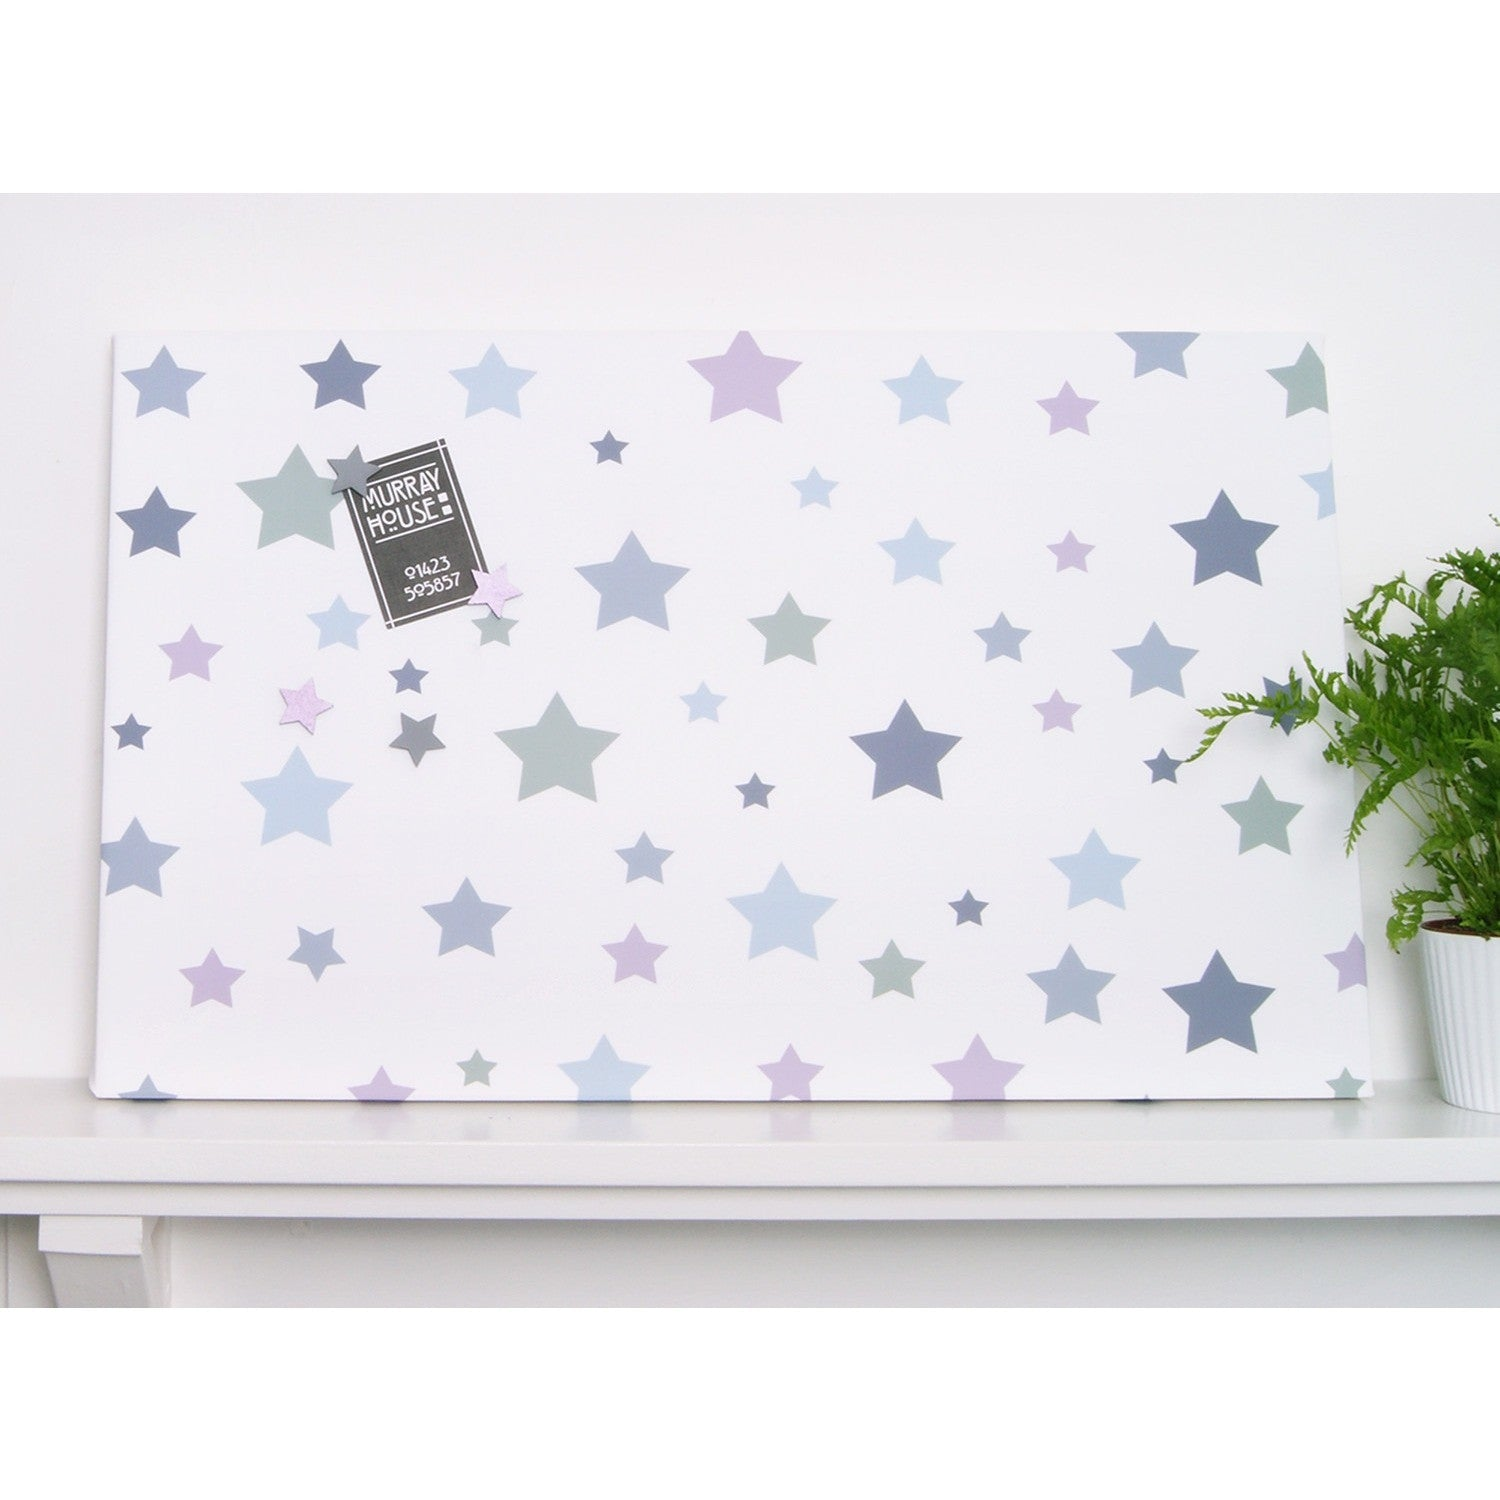 Muted Stars Magnetic Noticeboard - The Magnetic Noticeboard Company